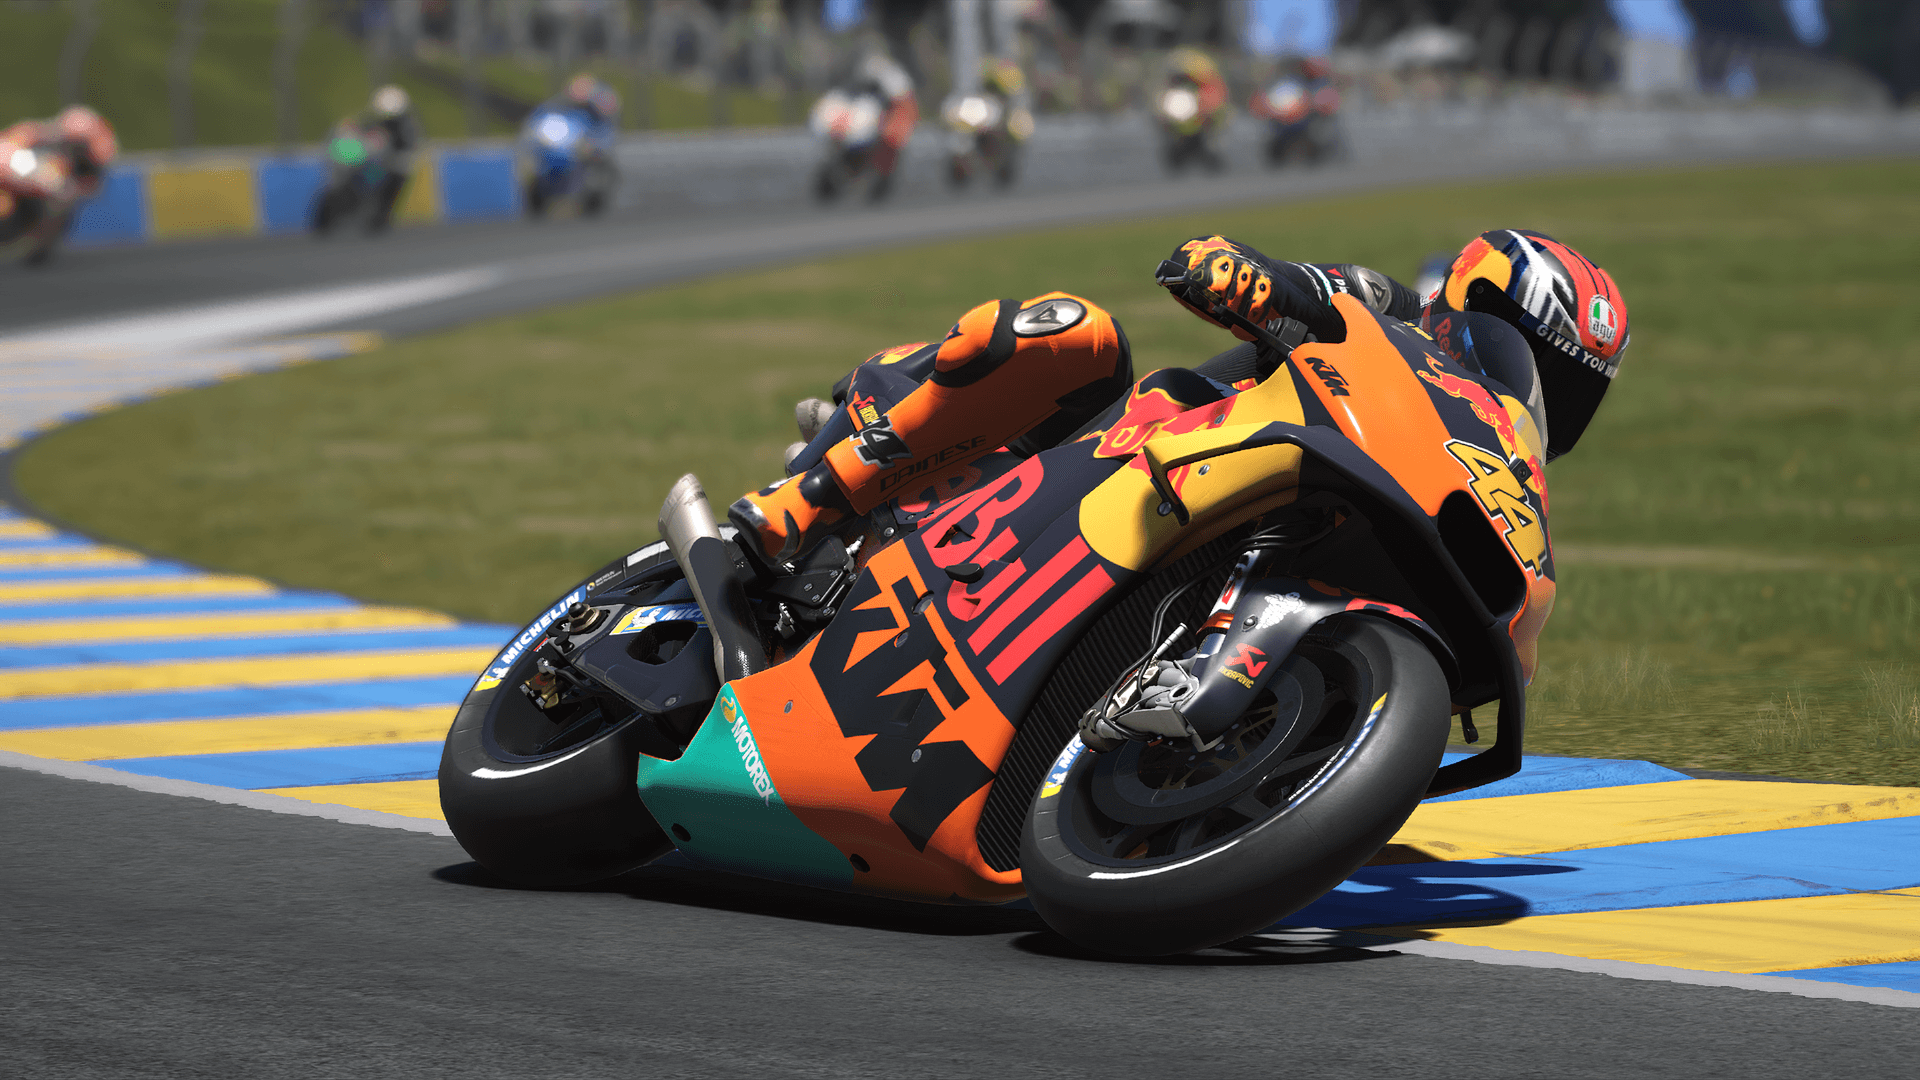 MotoGP 20 Releases First Gameplay Footage and Looks More Realistic Than Ever